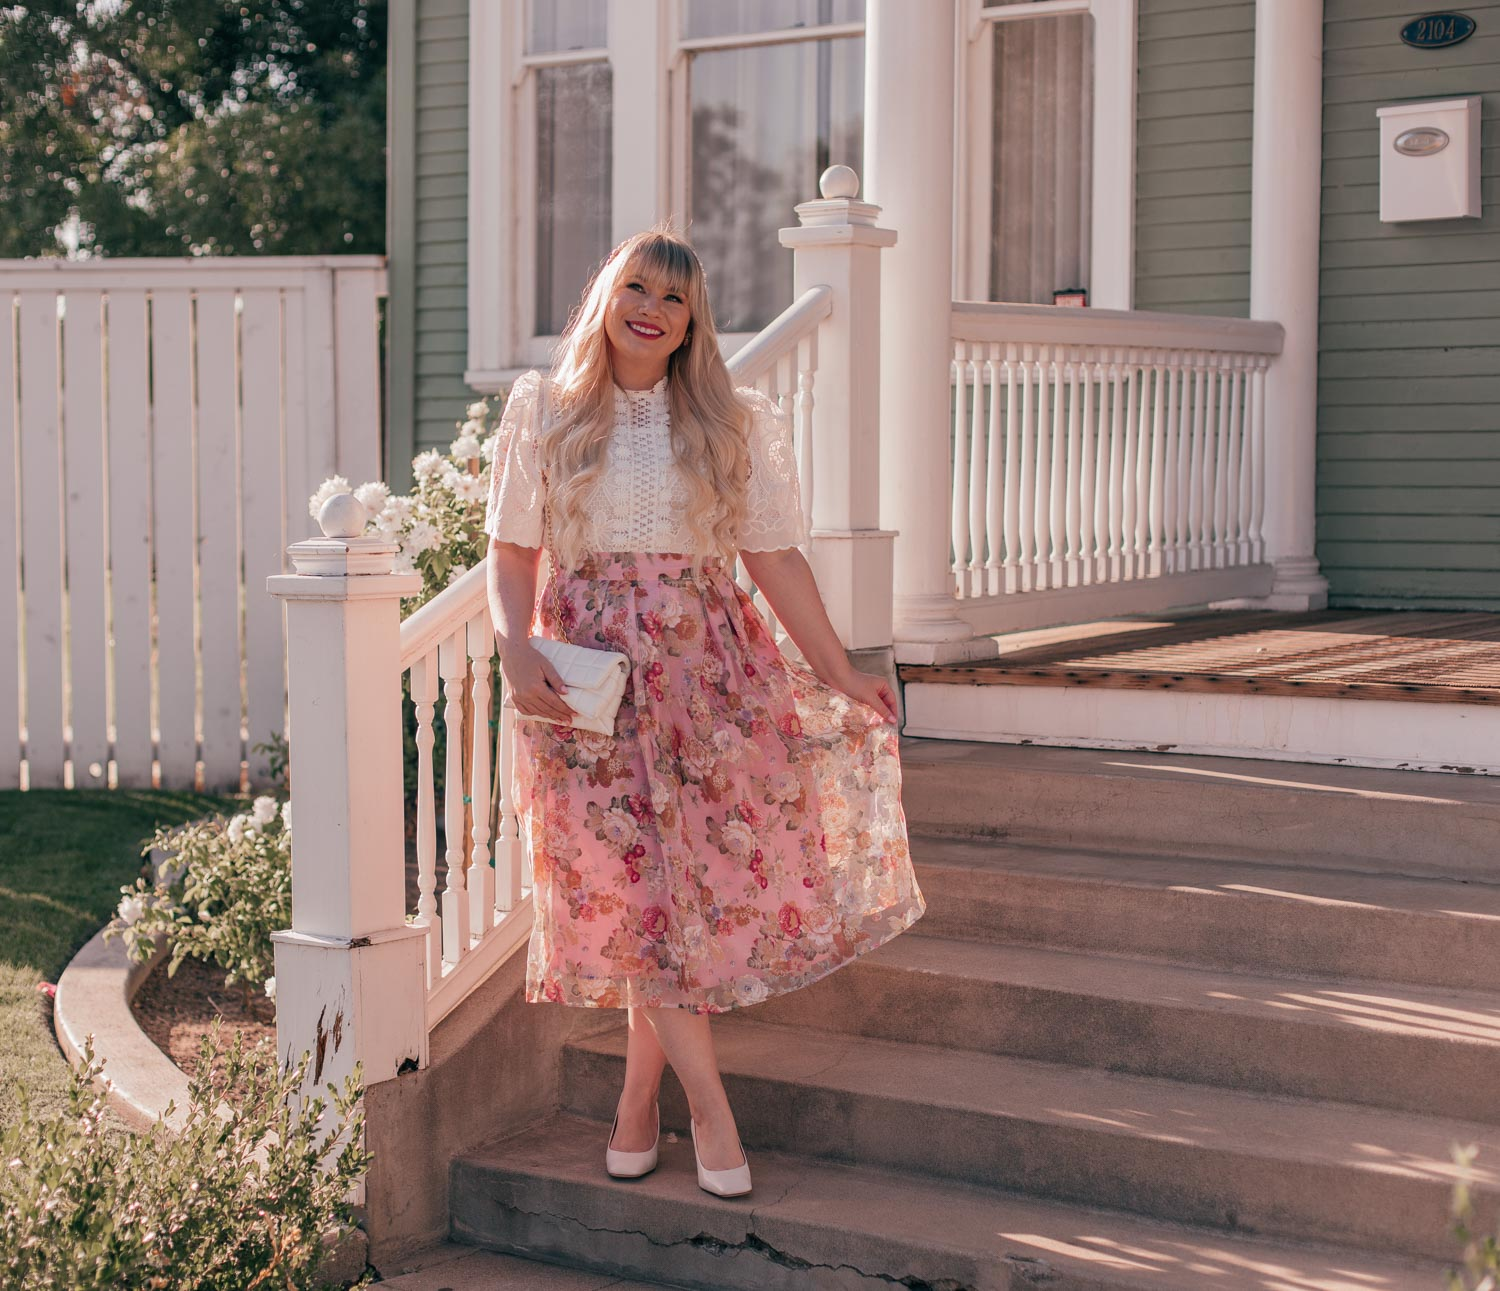 The Floral Summer Outfit I'll Be Wearing All Season